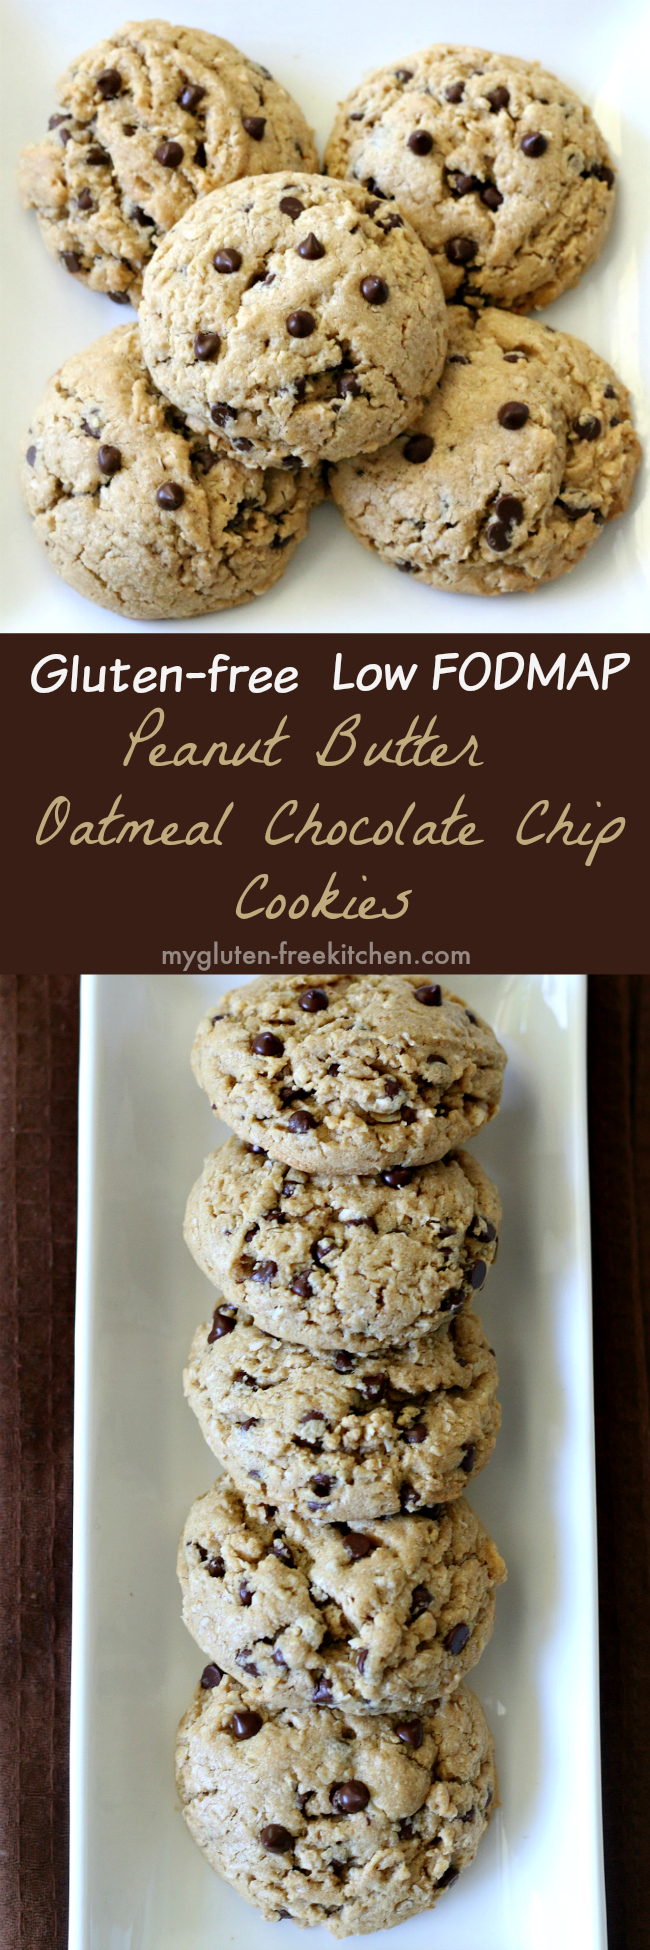 Gluten-free Low FODMAP Peanut Butter Oatmeal Chocolate Chip Cookies Recipe